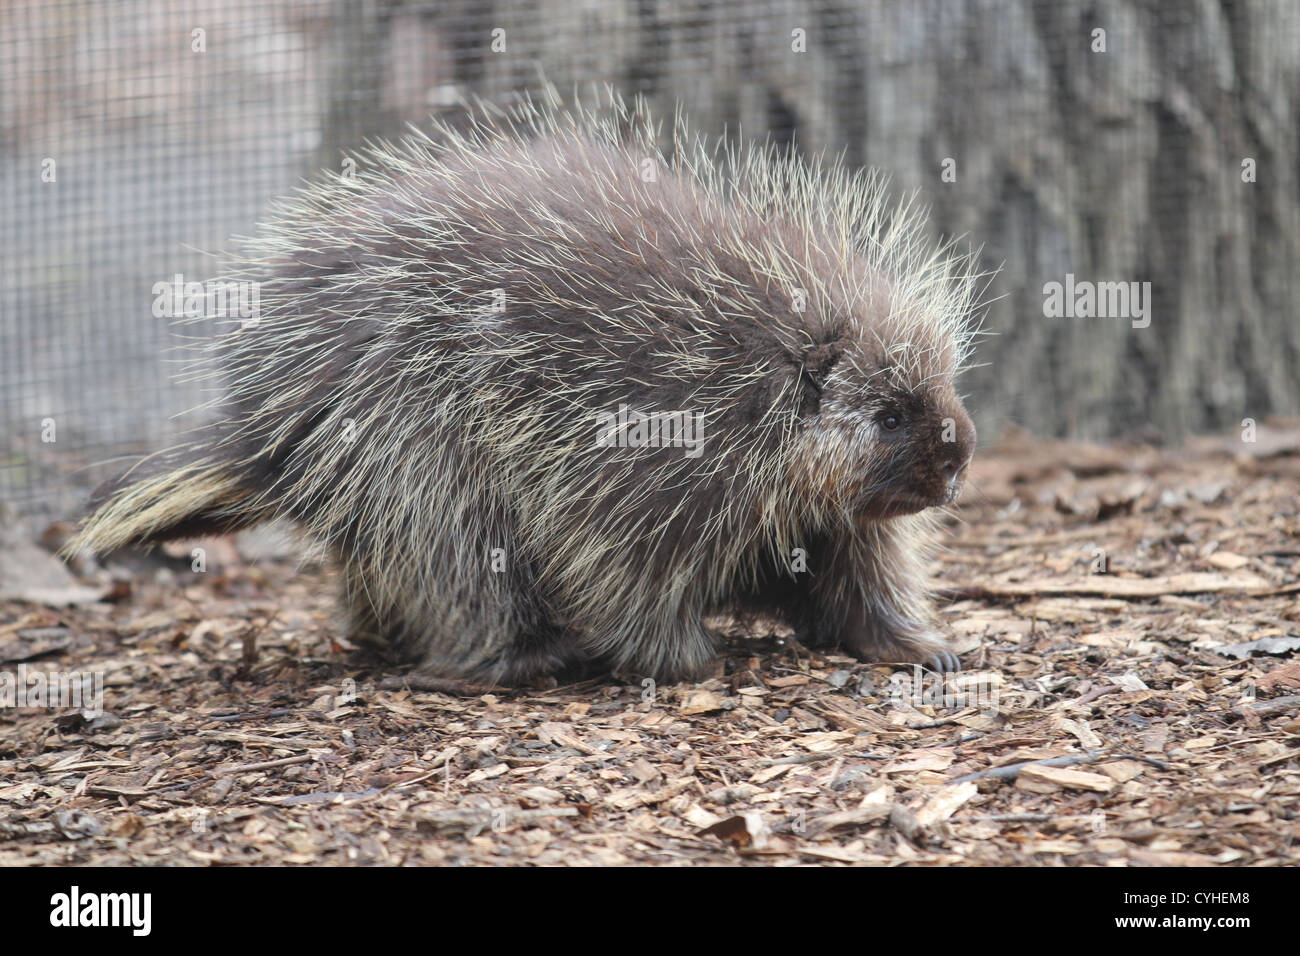 Porcupine walking on the ground, profile - Stock Image